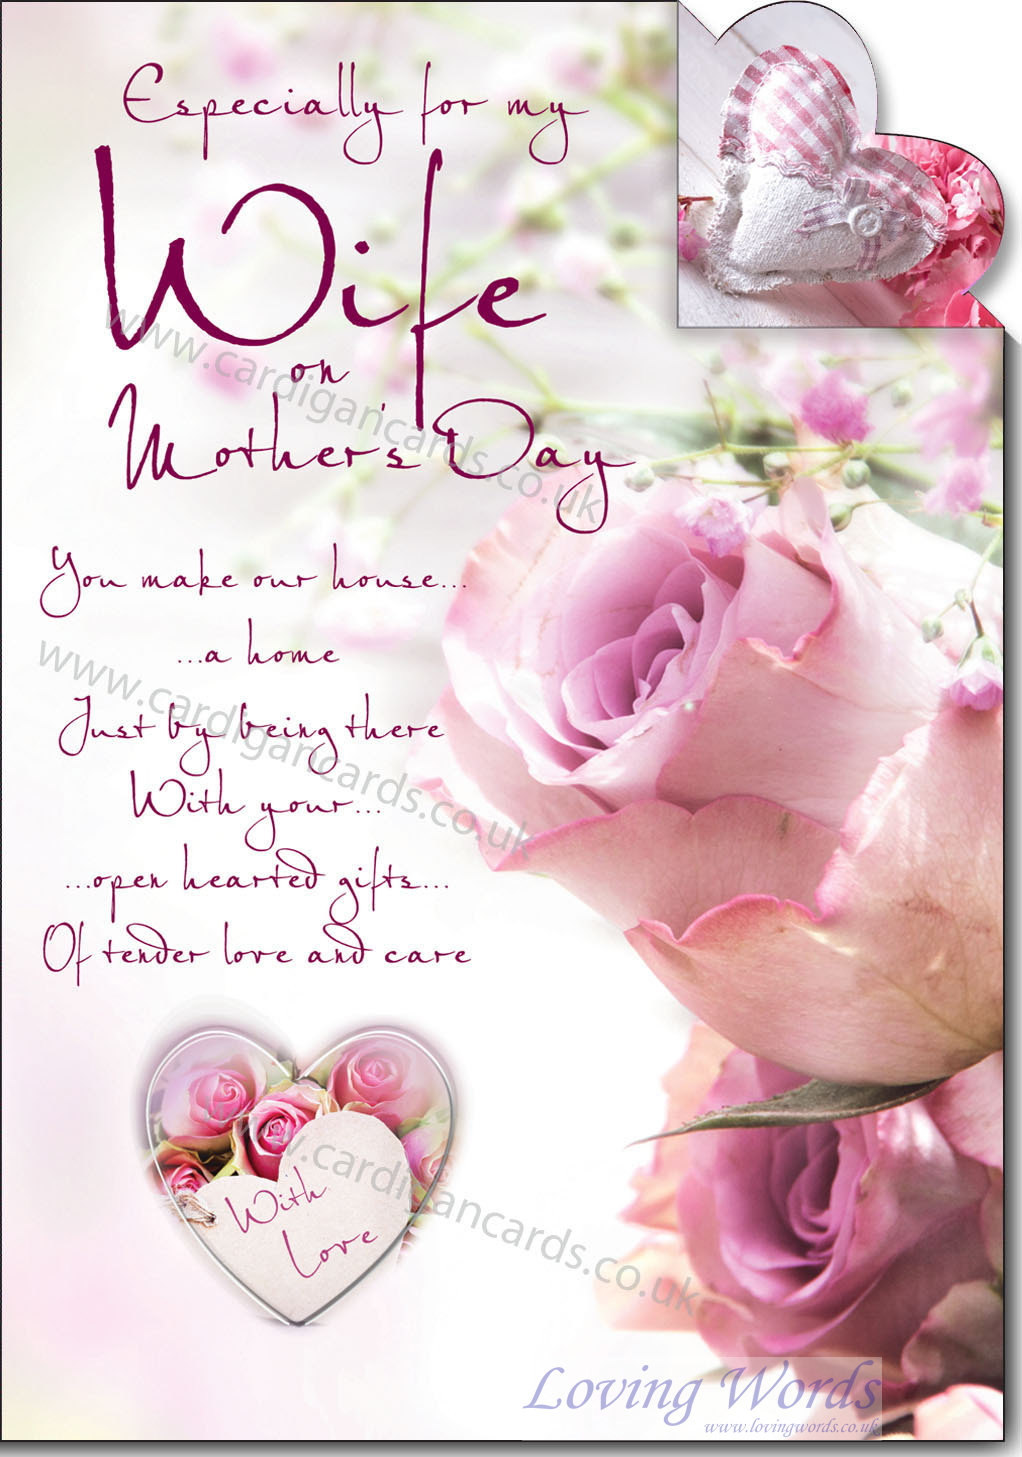 My wife on mothers day greeting cards by loving words personalised greeting cards m4hsunfo